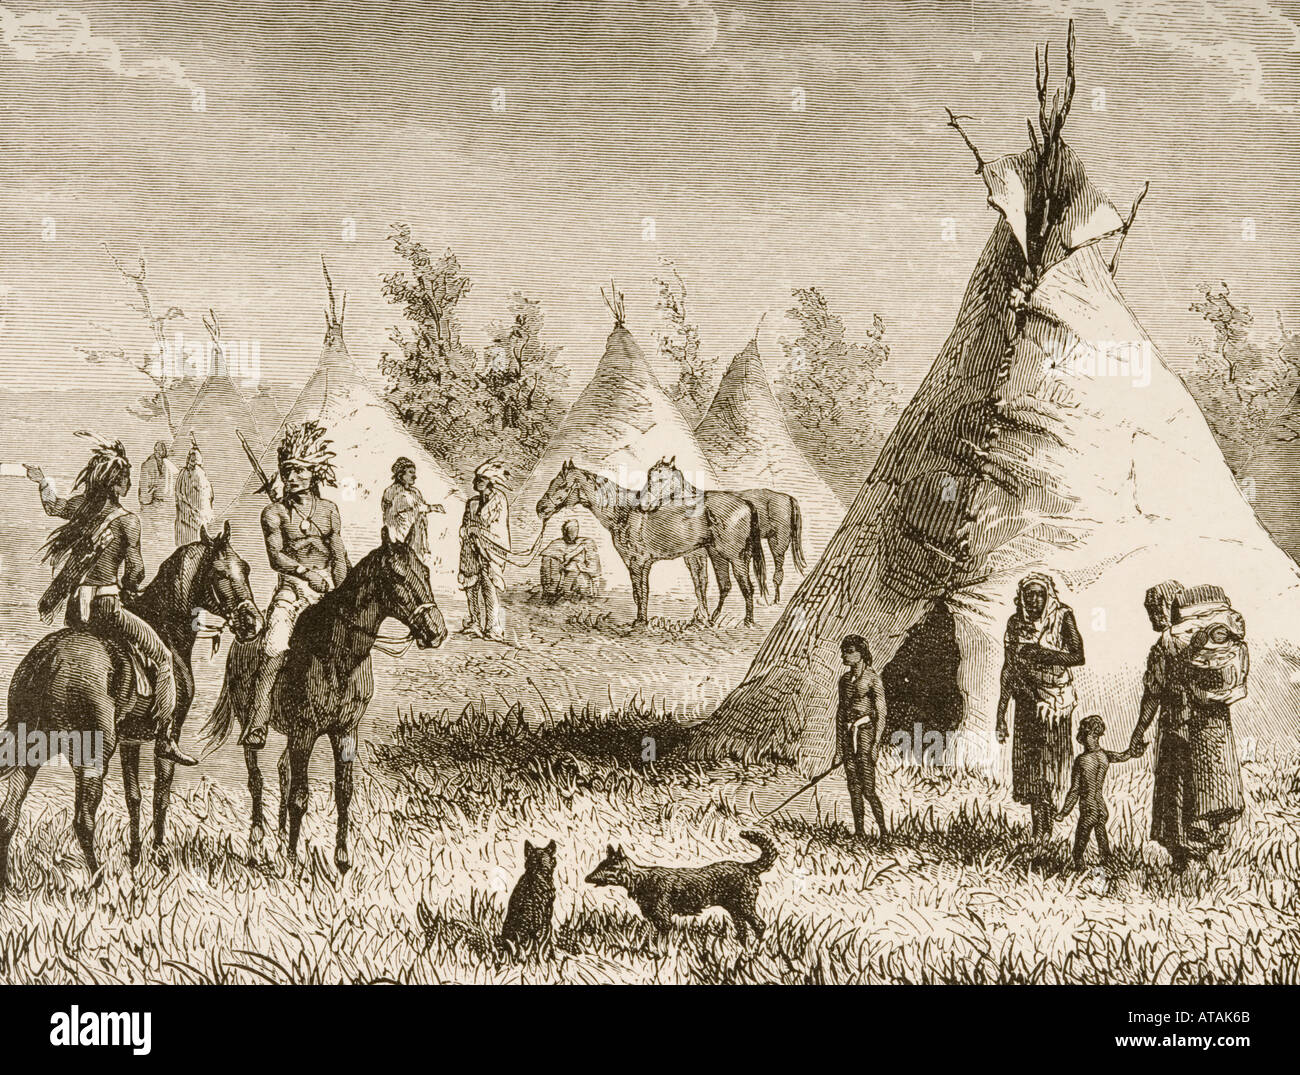 Sioux Indians Tepee Stock Photos & Sioux Indians Tepee Stock